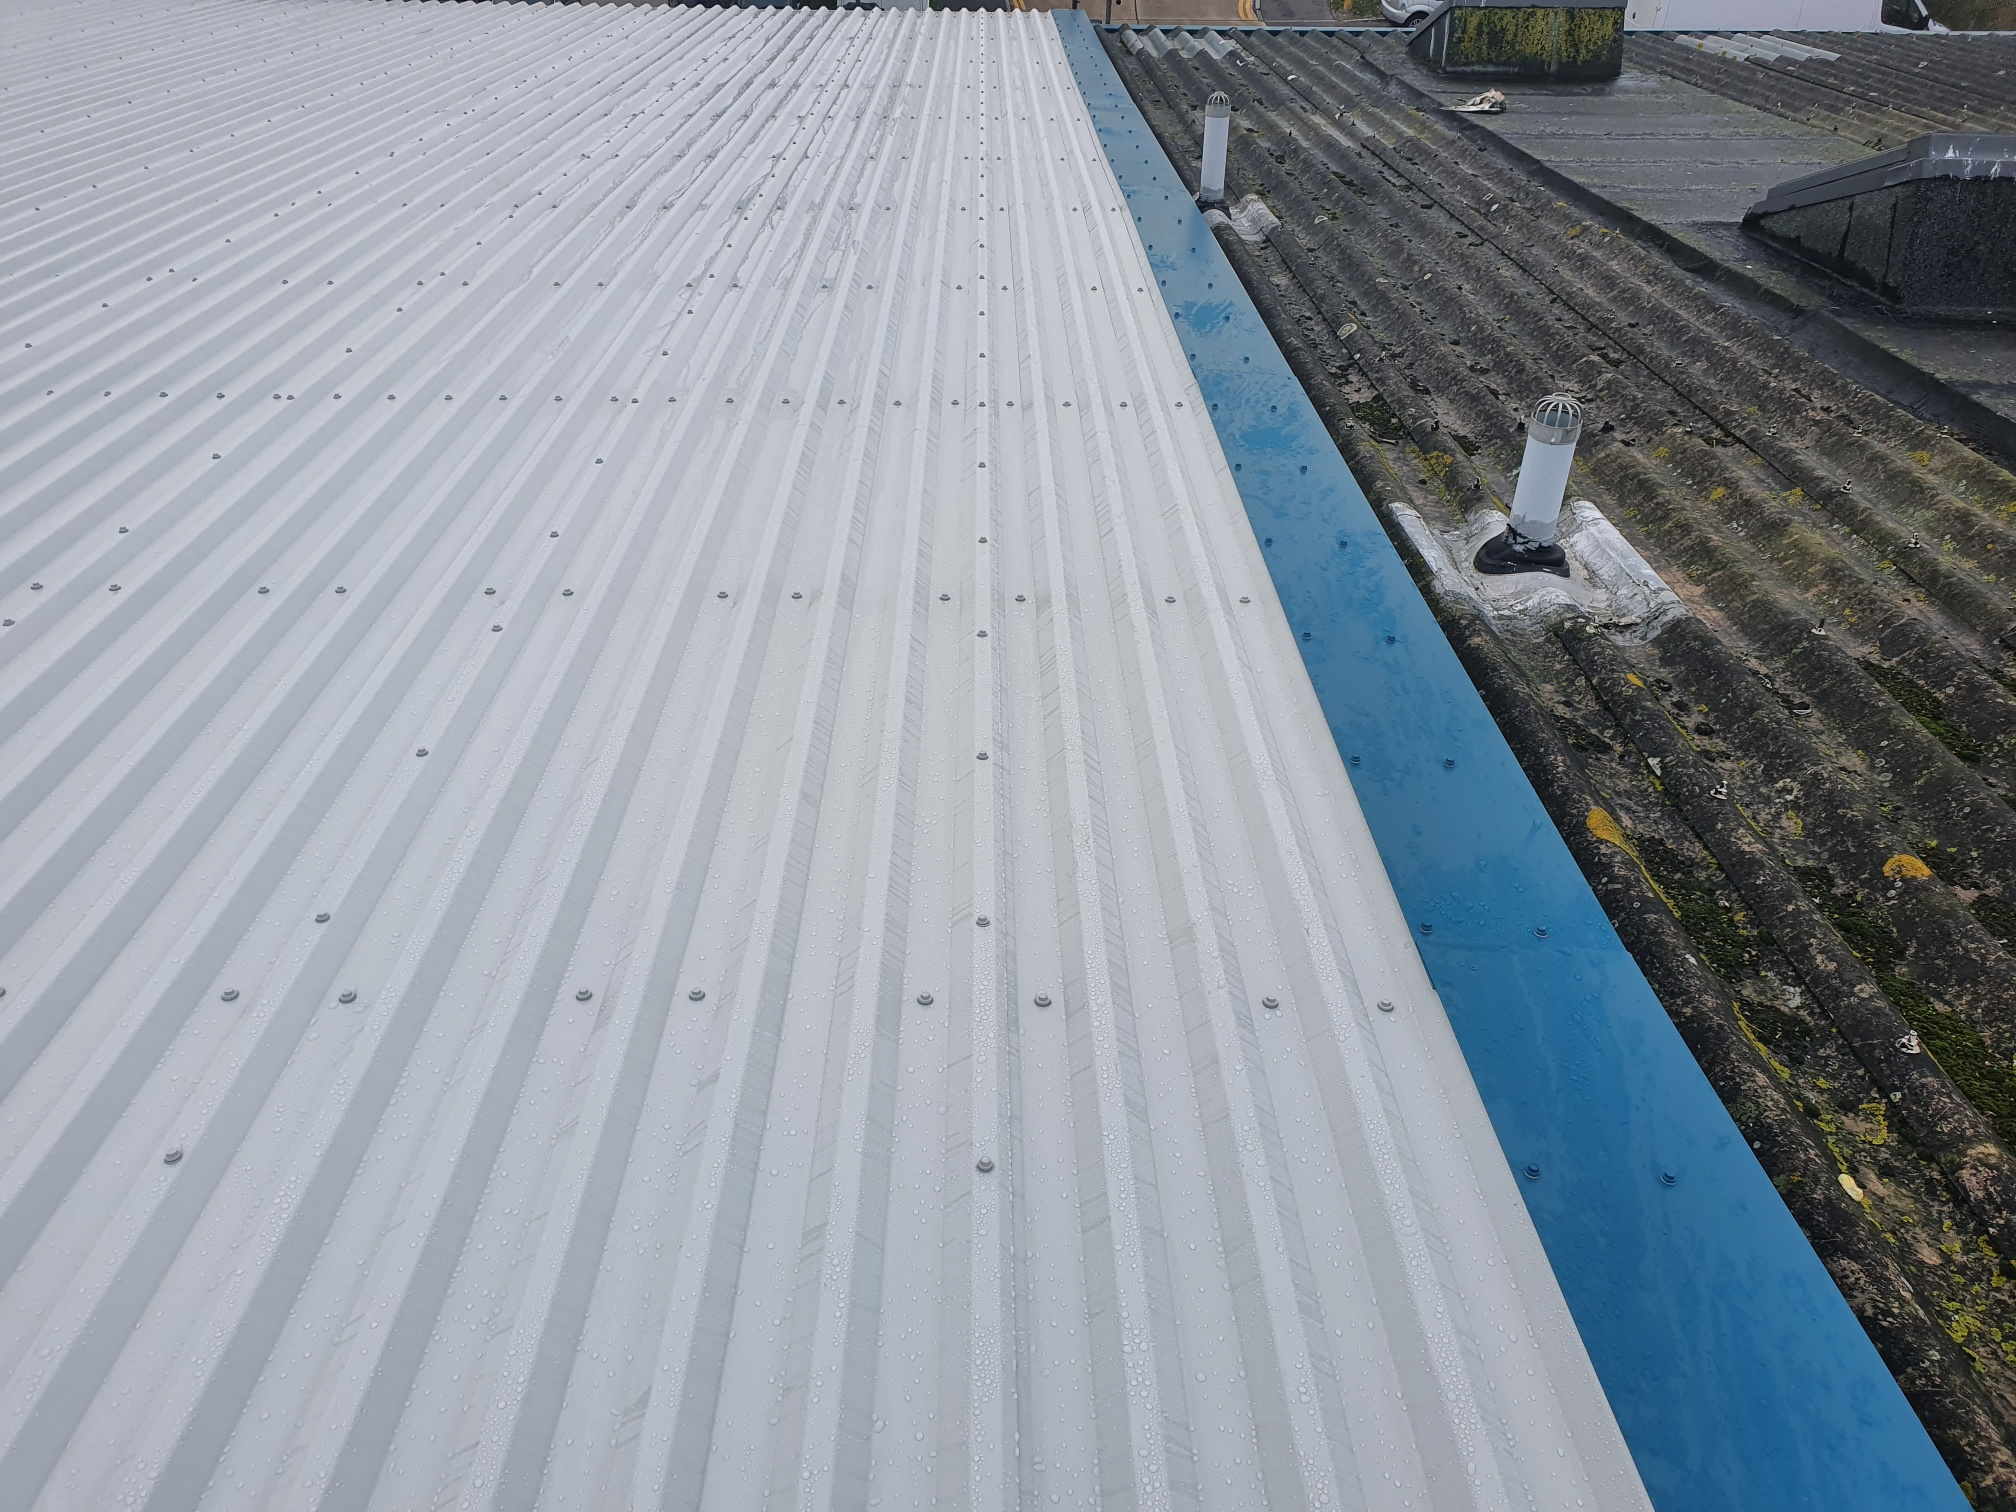 Warehouse over roofing in Worthing West Sussex